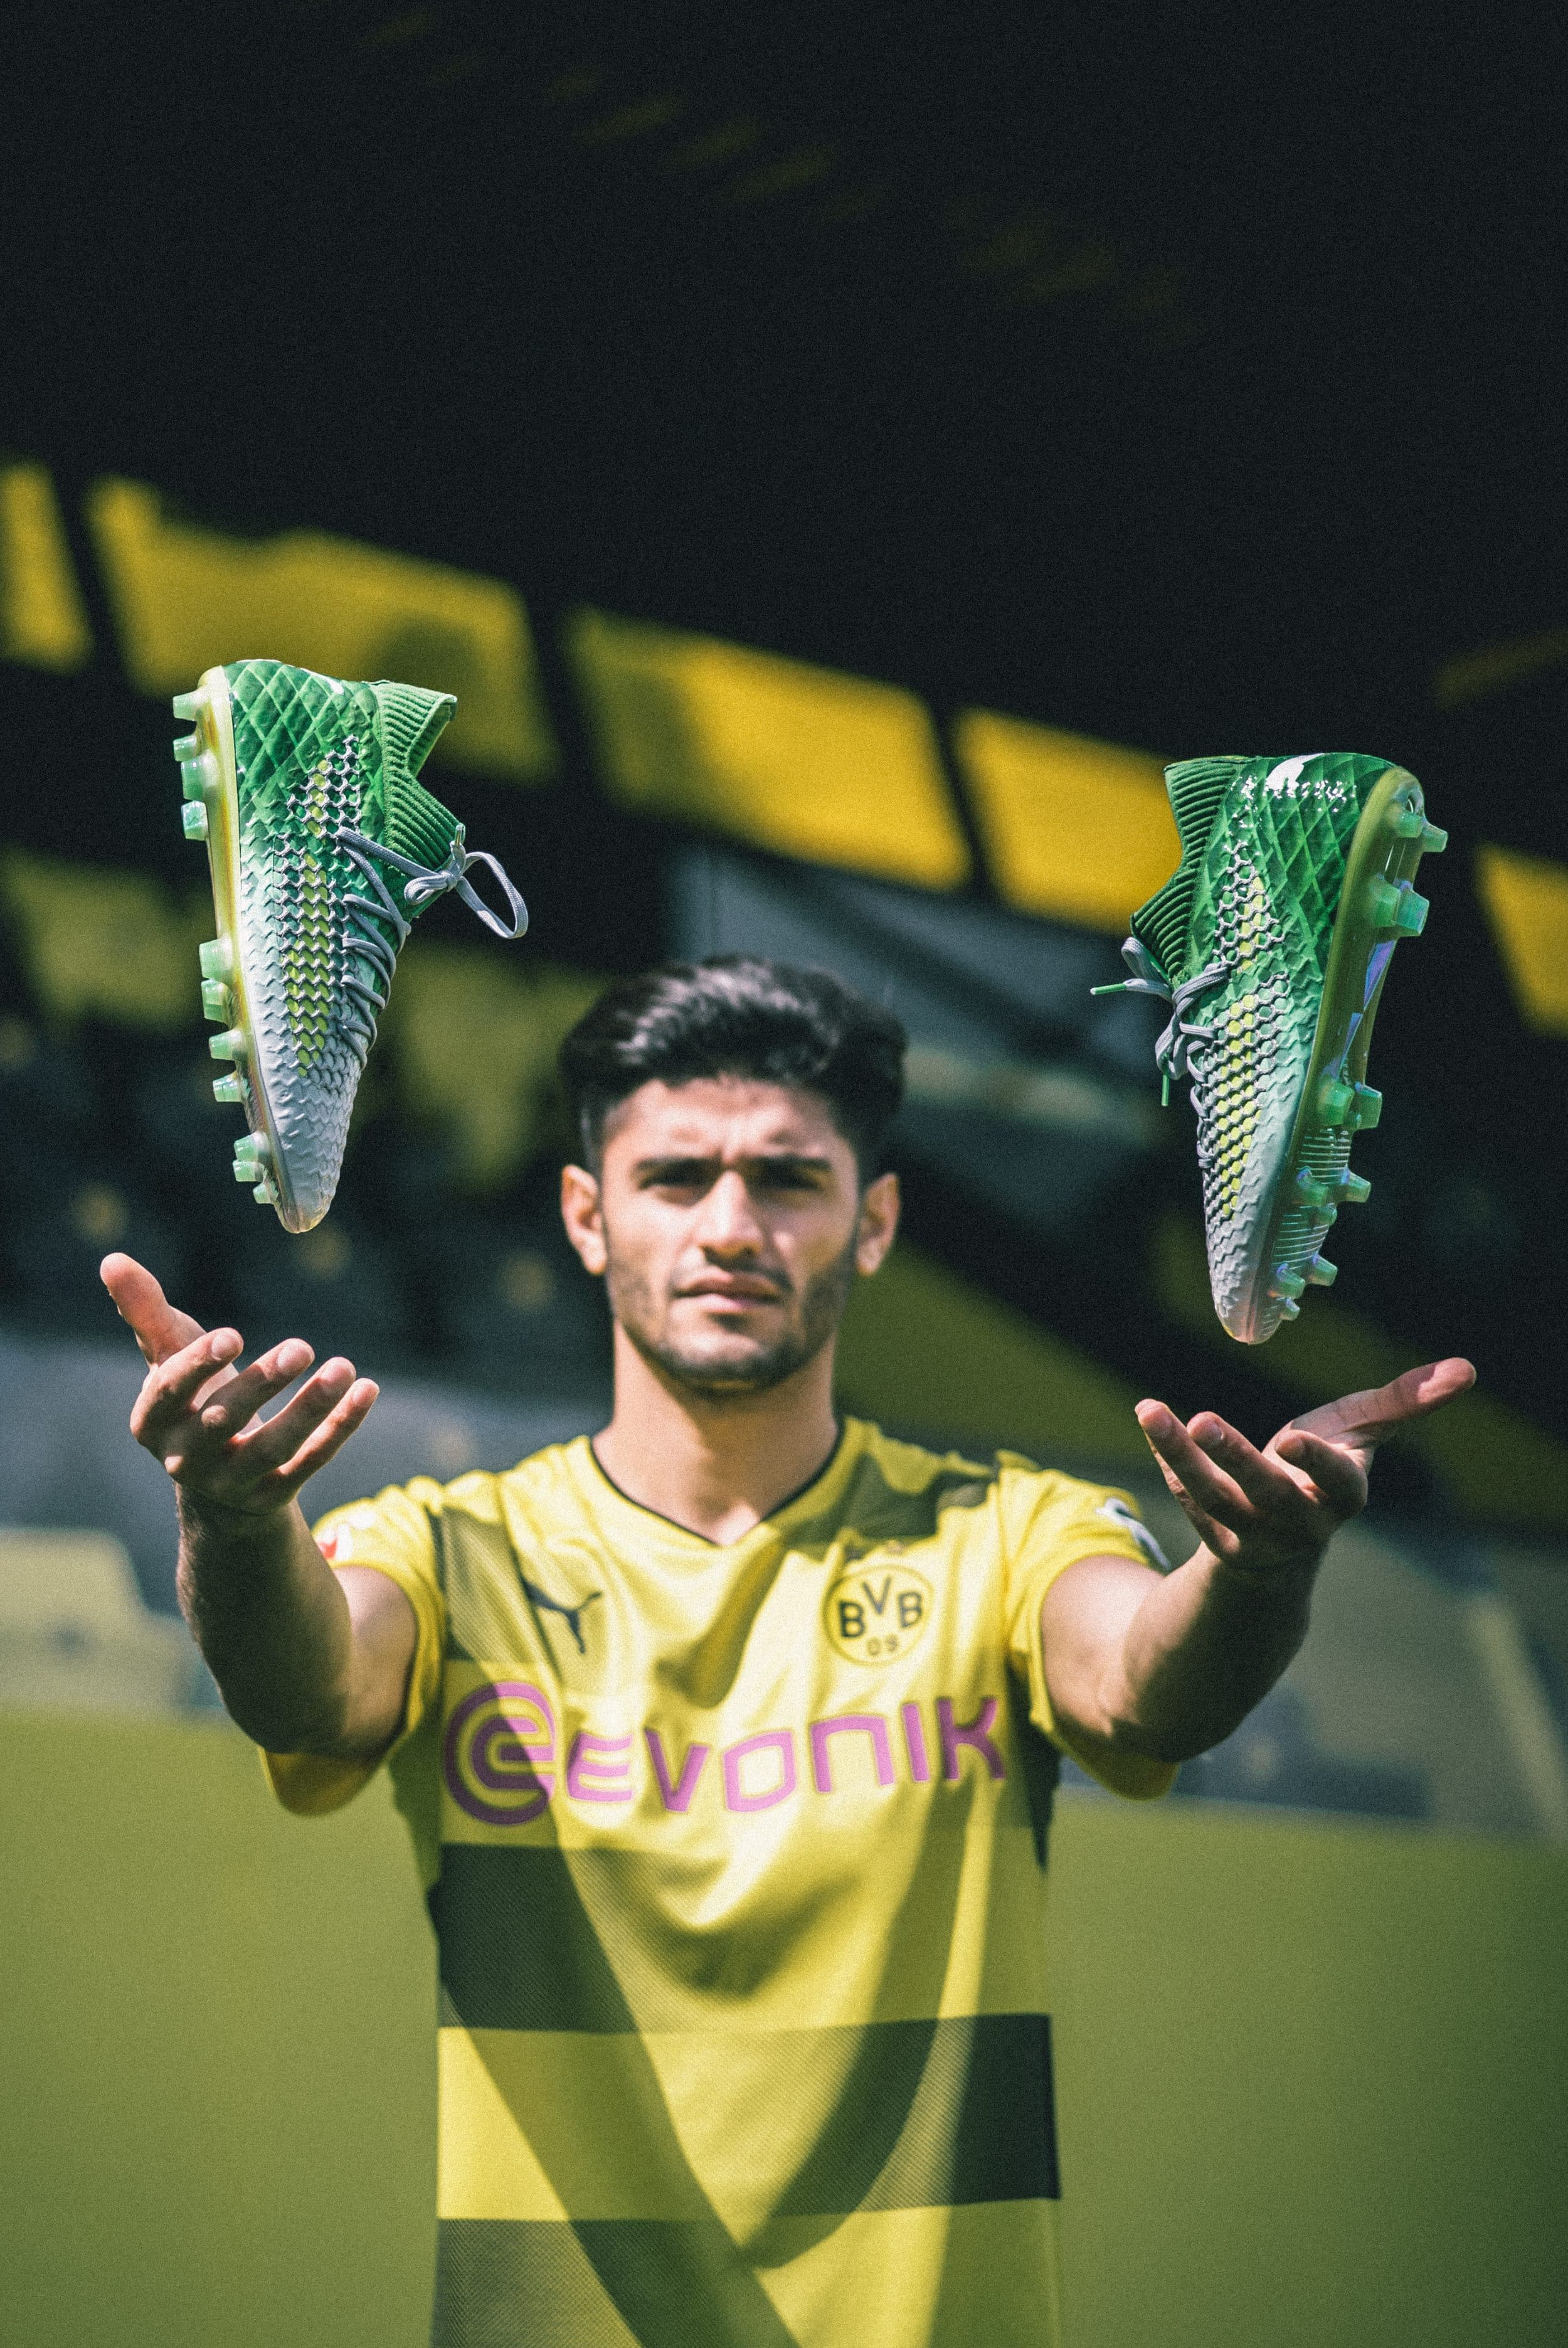 Chaussures-football-puma-future-next-dahoud-mai-2018